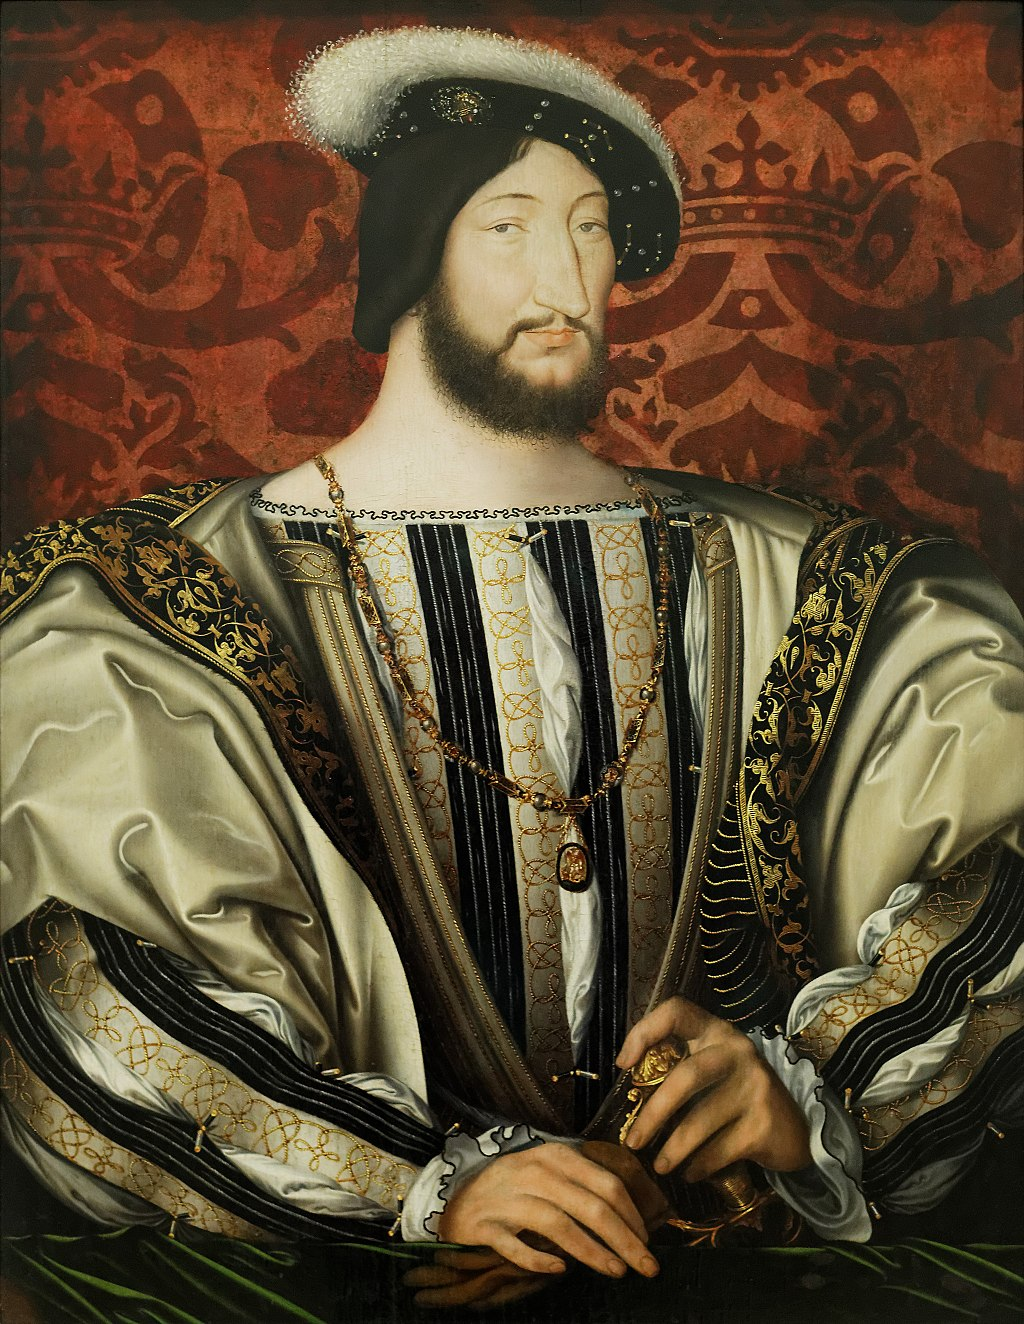 François I, king of France, Louvre (Public Domain image from Wikipedia)